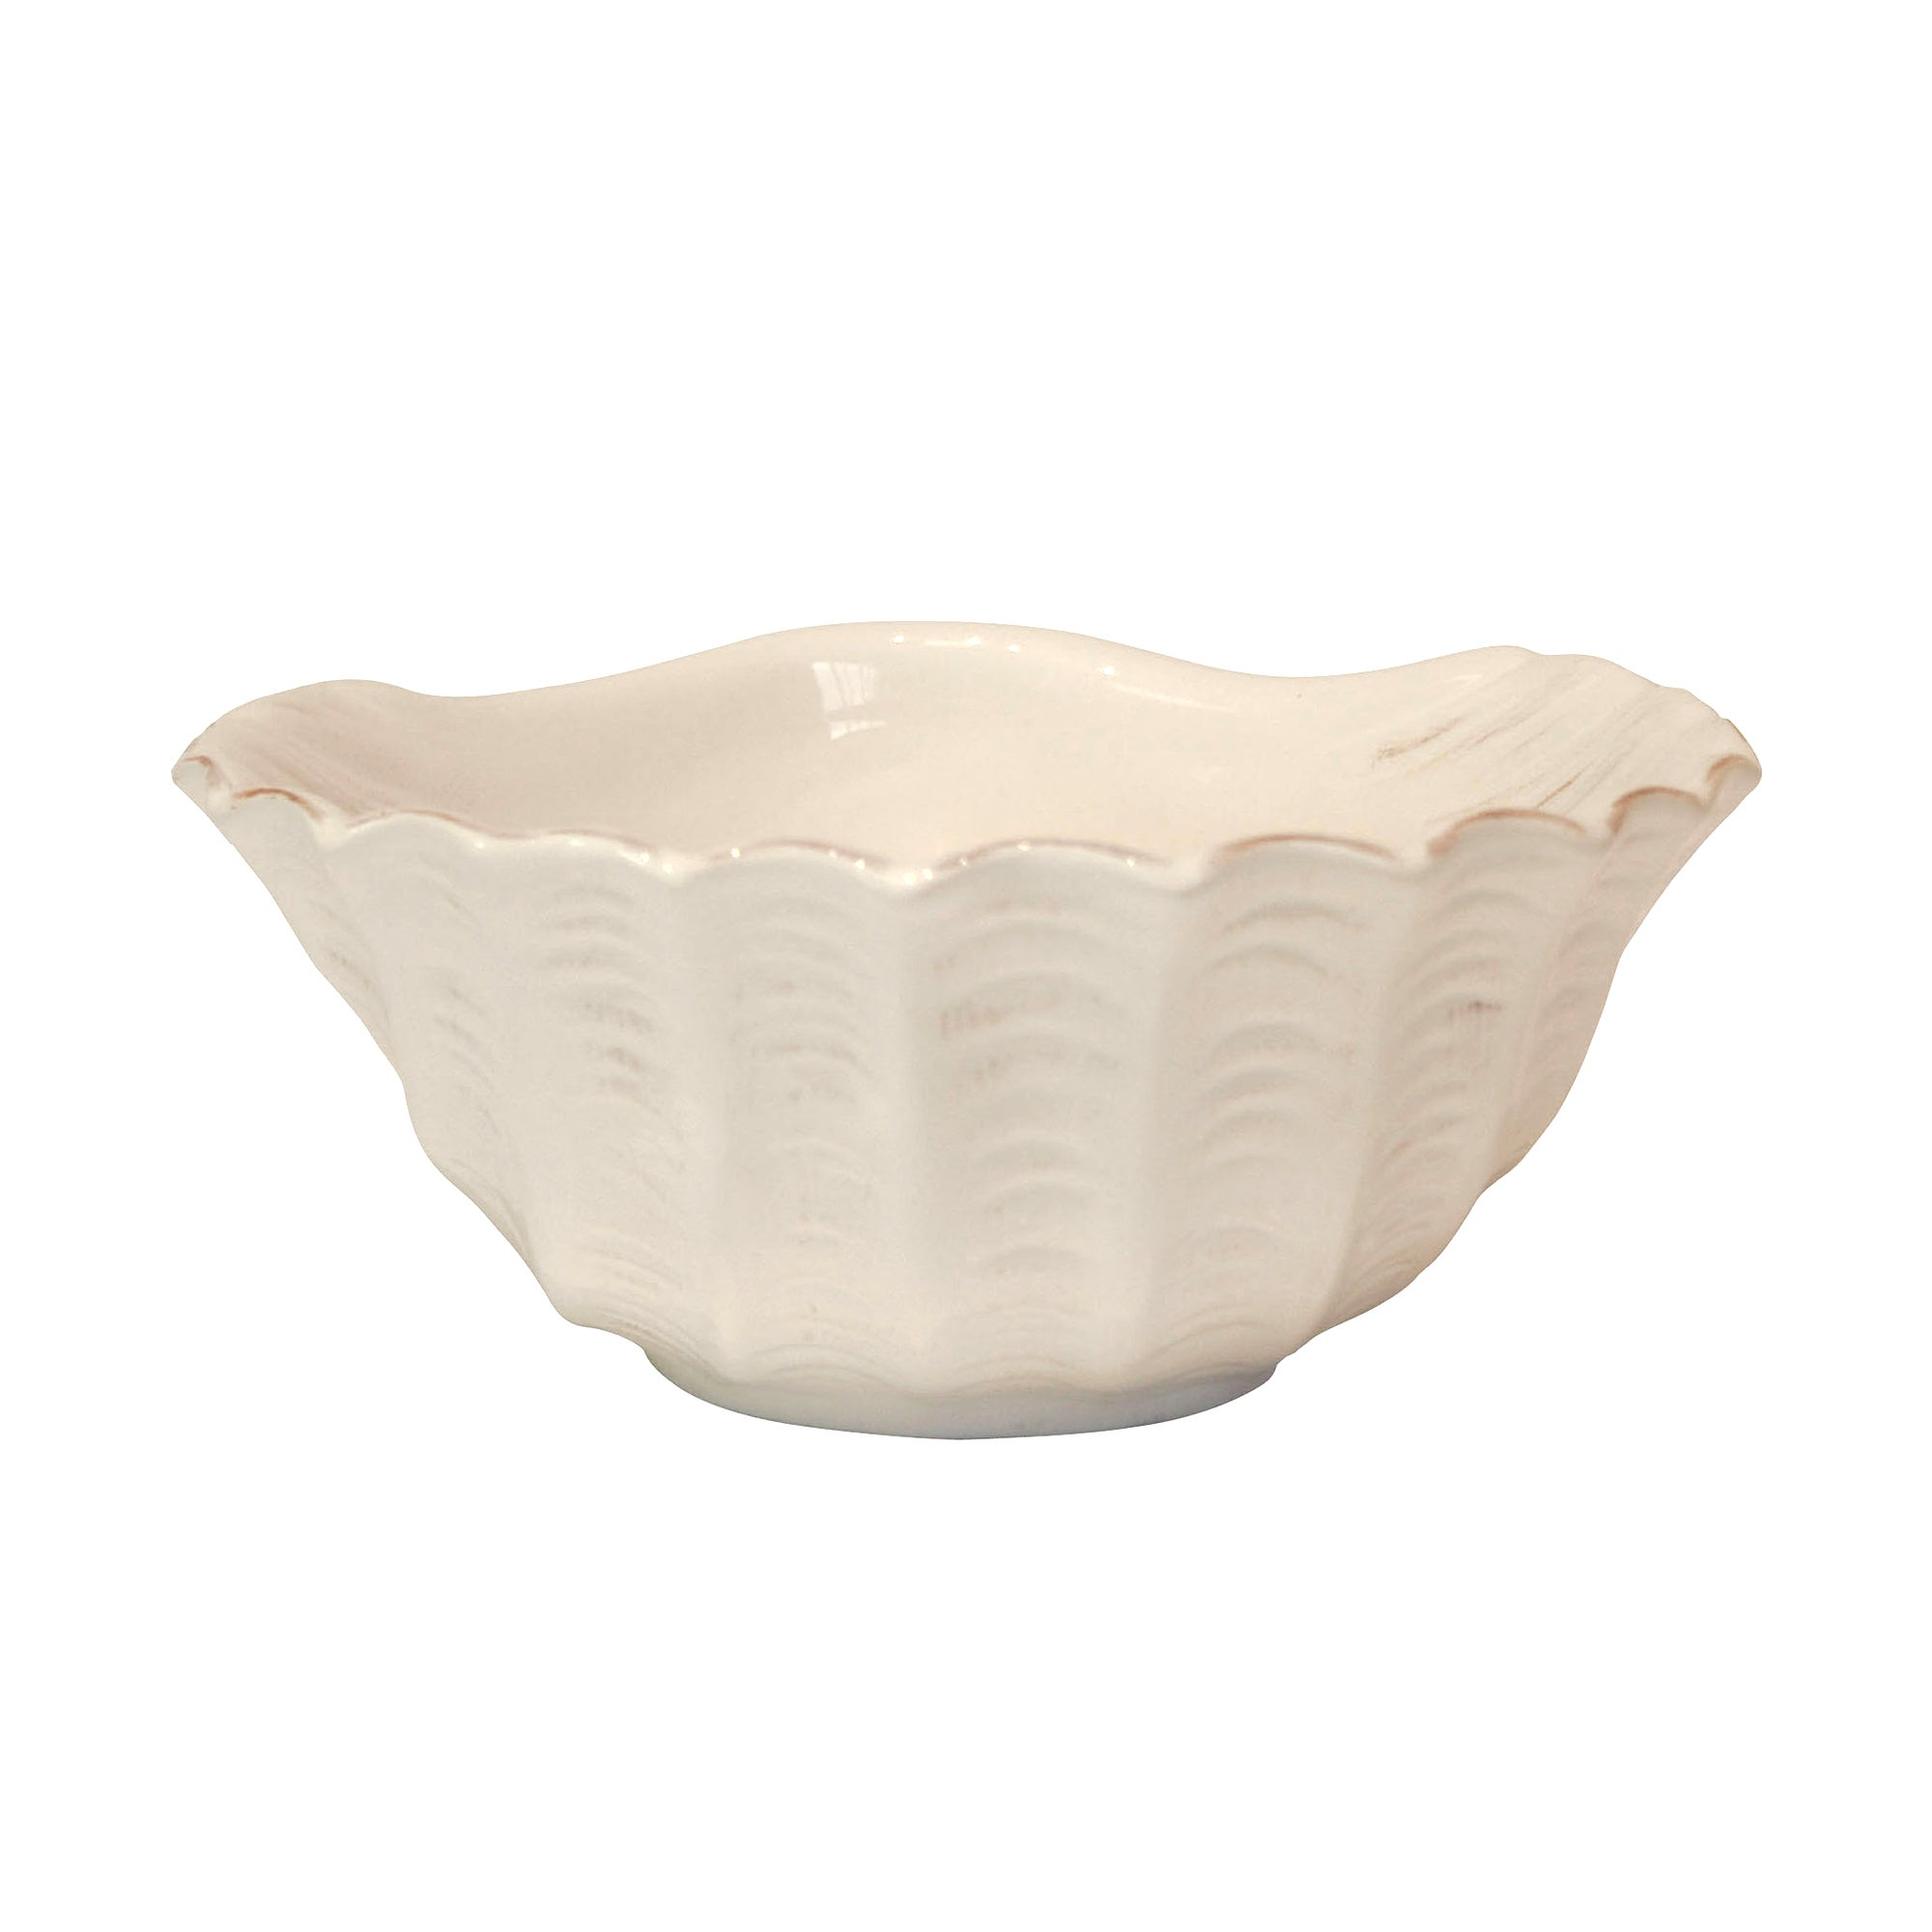 Shell Collection Ceramic Bowl